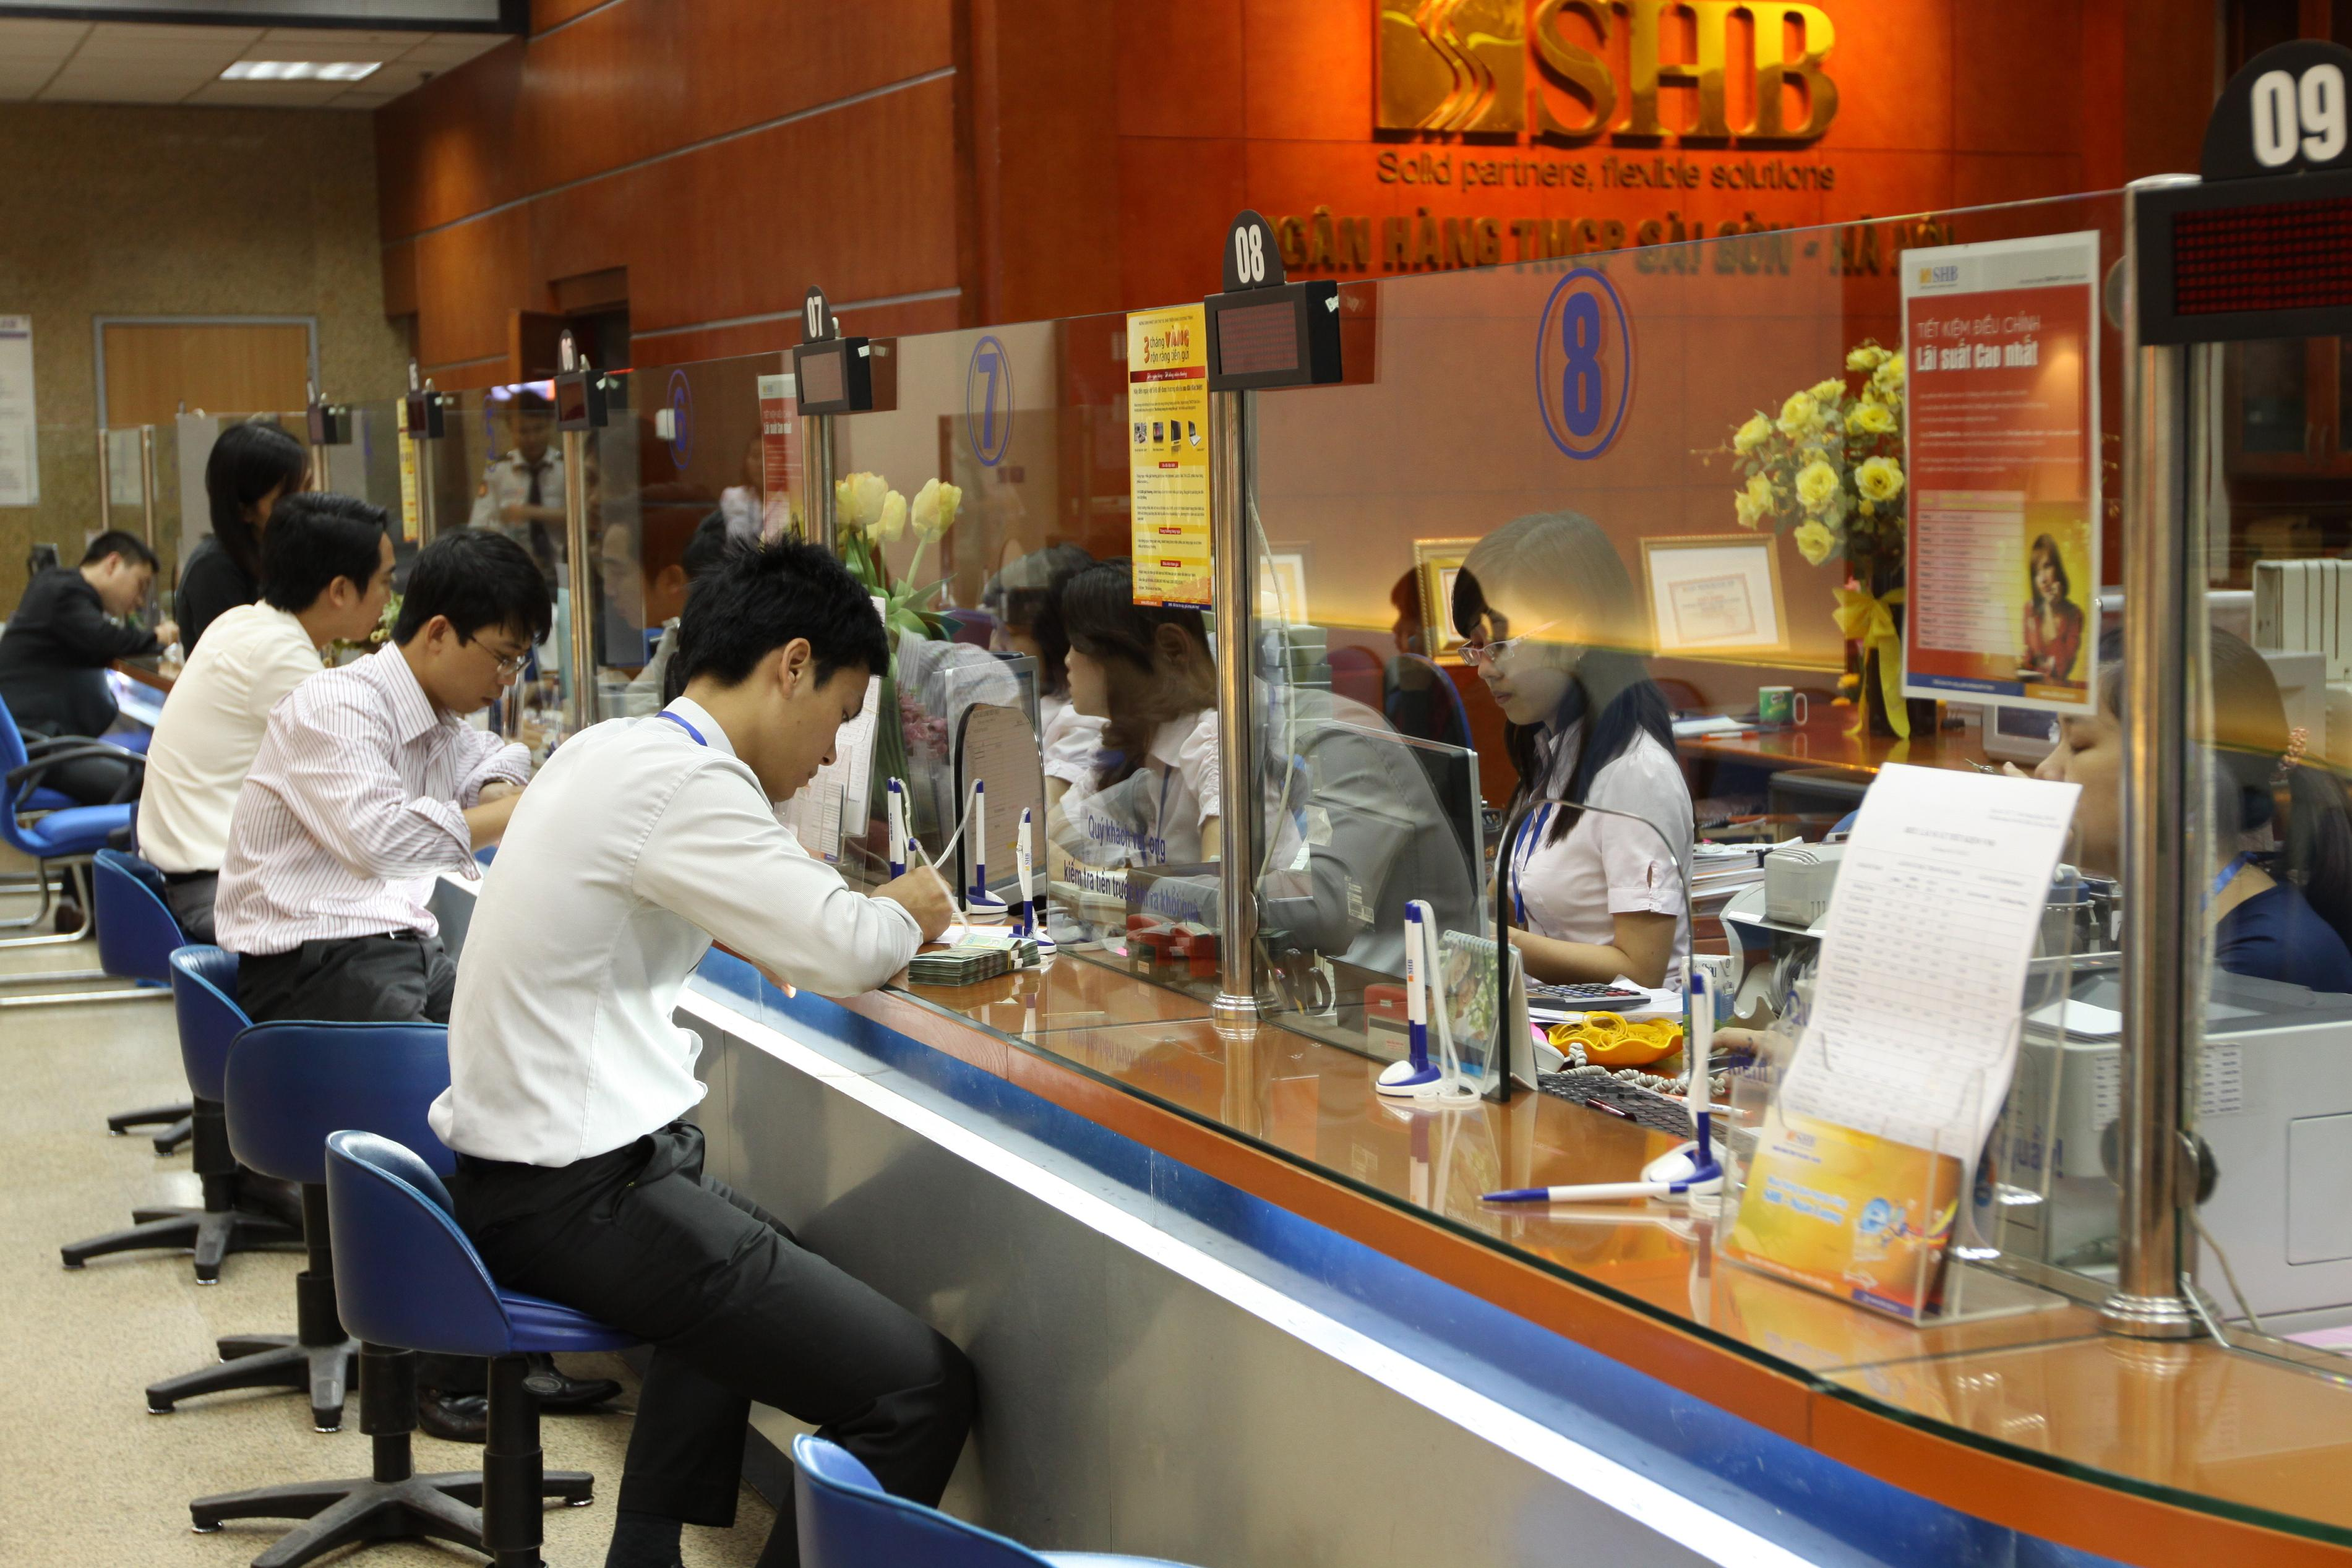 shb merger with vvf approved in principle